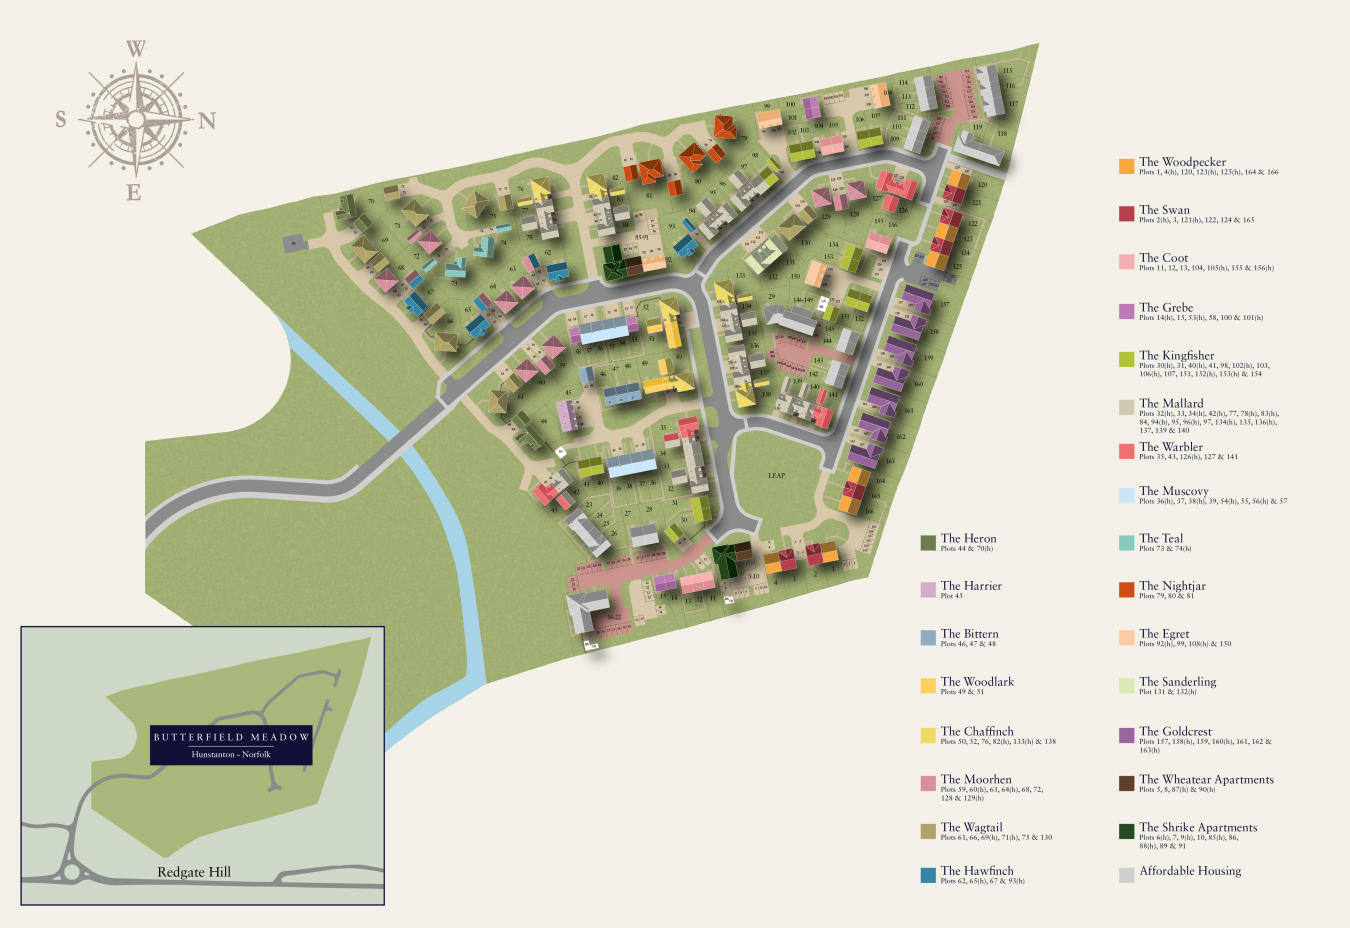 erfield Meadow New Homes Development by Hopkins Homes on